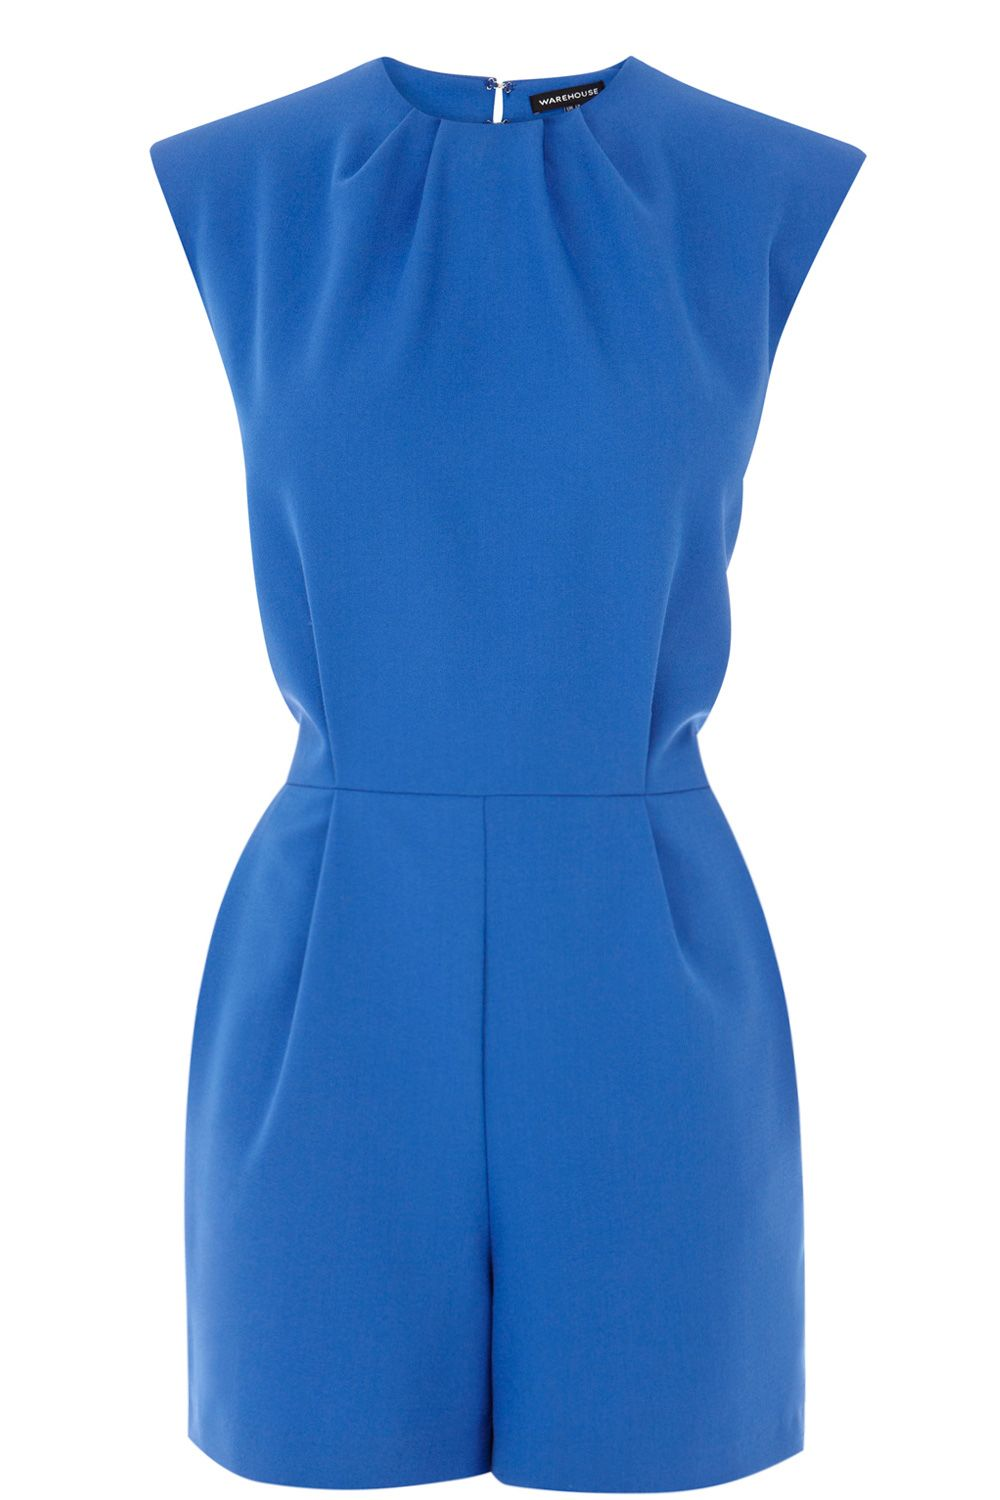 485a91aae67 high neck electric blue playsuit from warehouse.co.uk